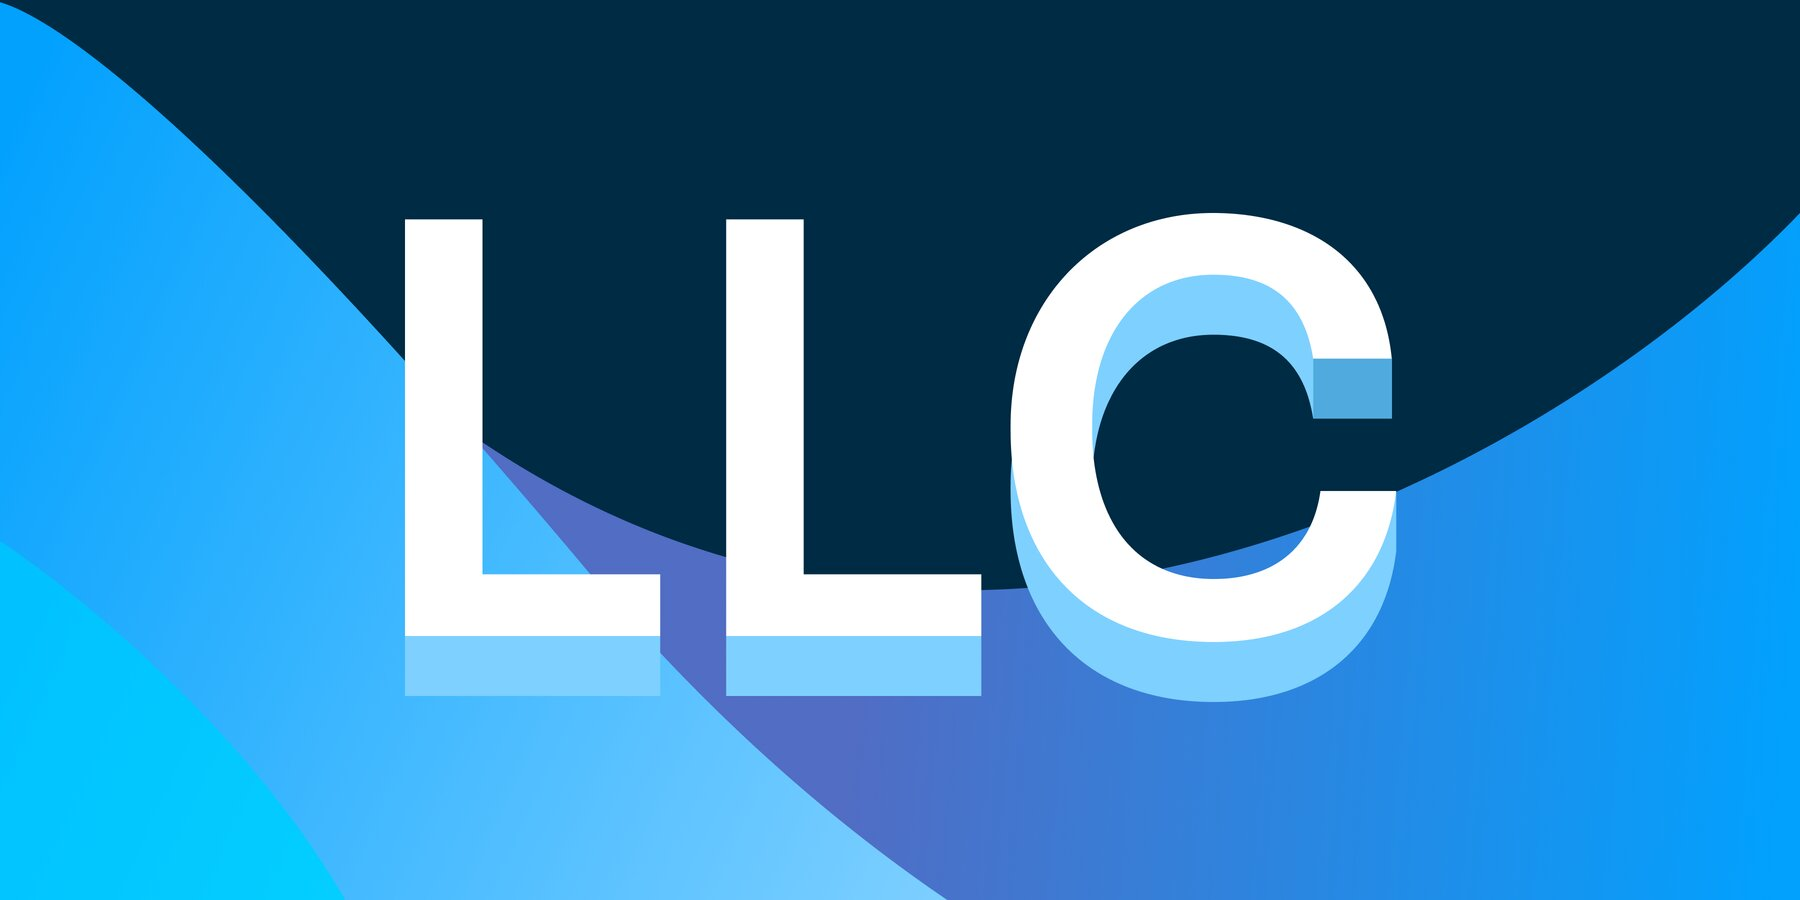 LLC Formation- The Top 7 Best Online LLC Services